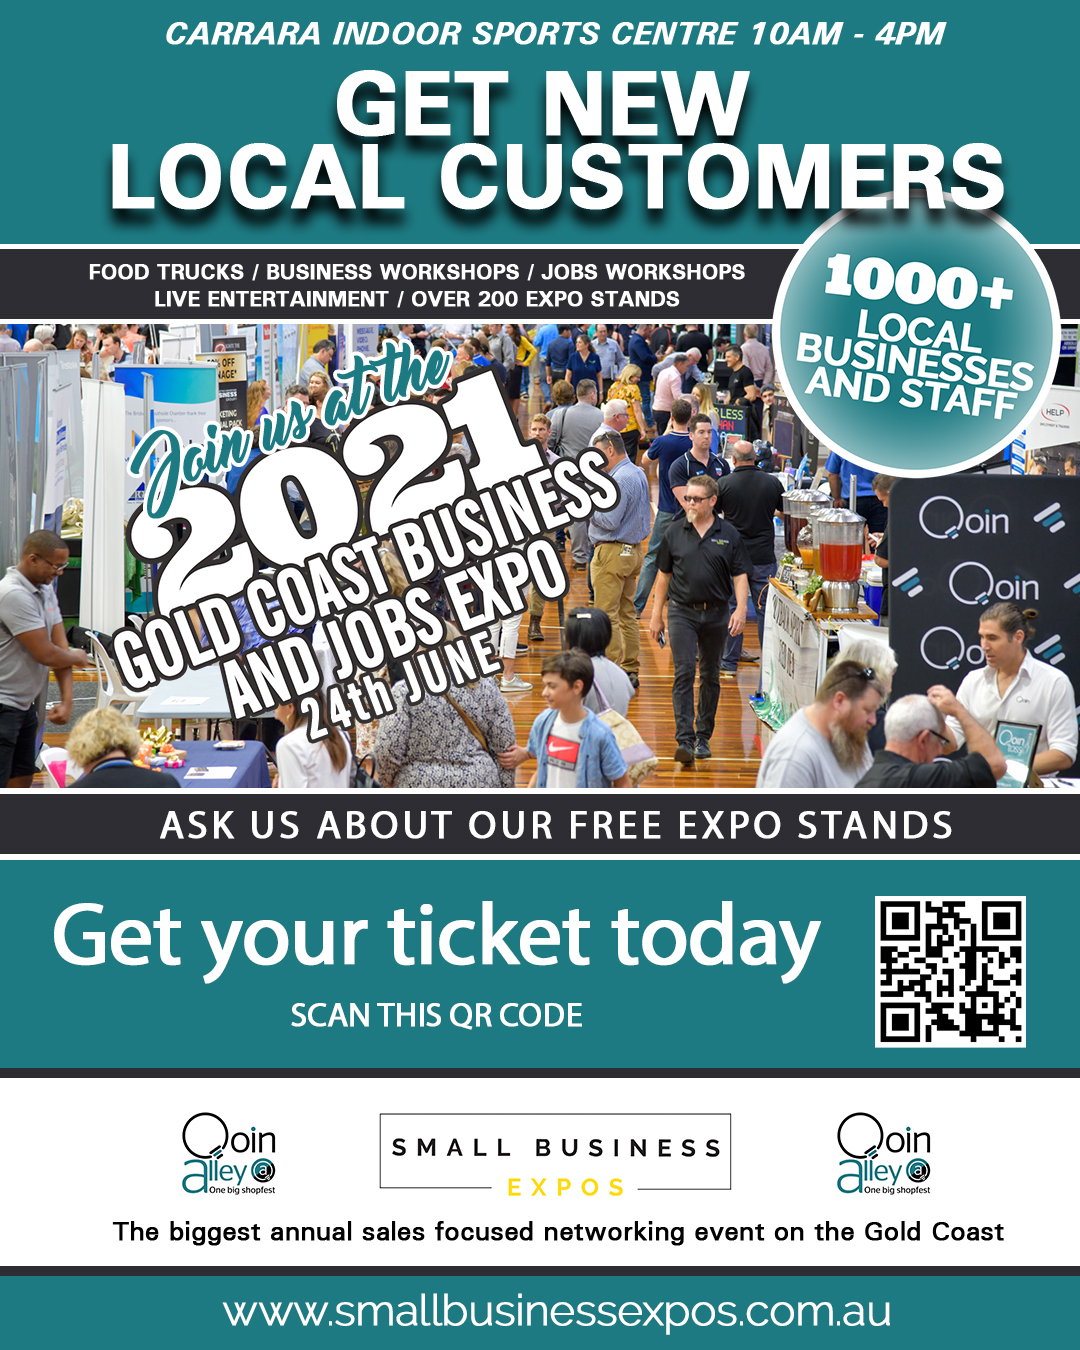 Gold Coast Small Business Expo LinkedIn Post Image Ticket QR-Code